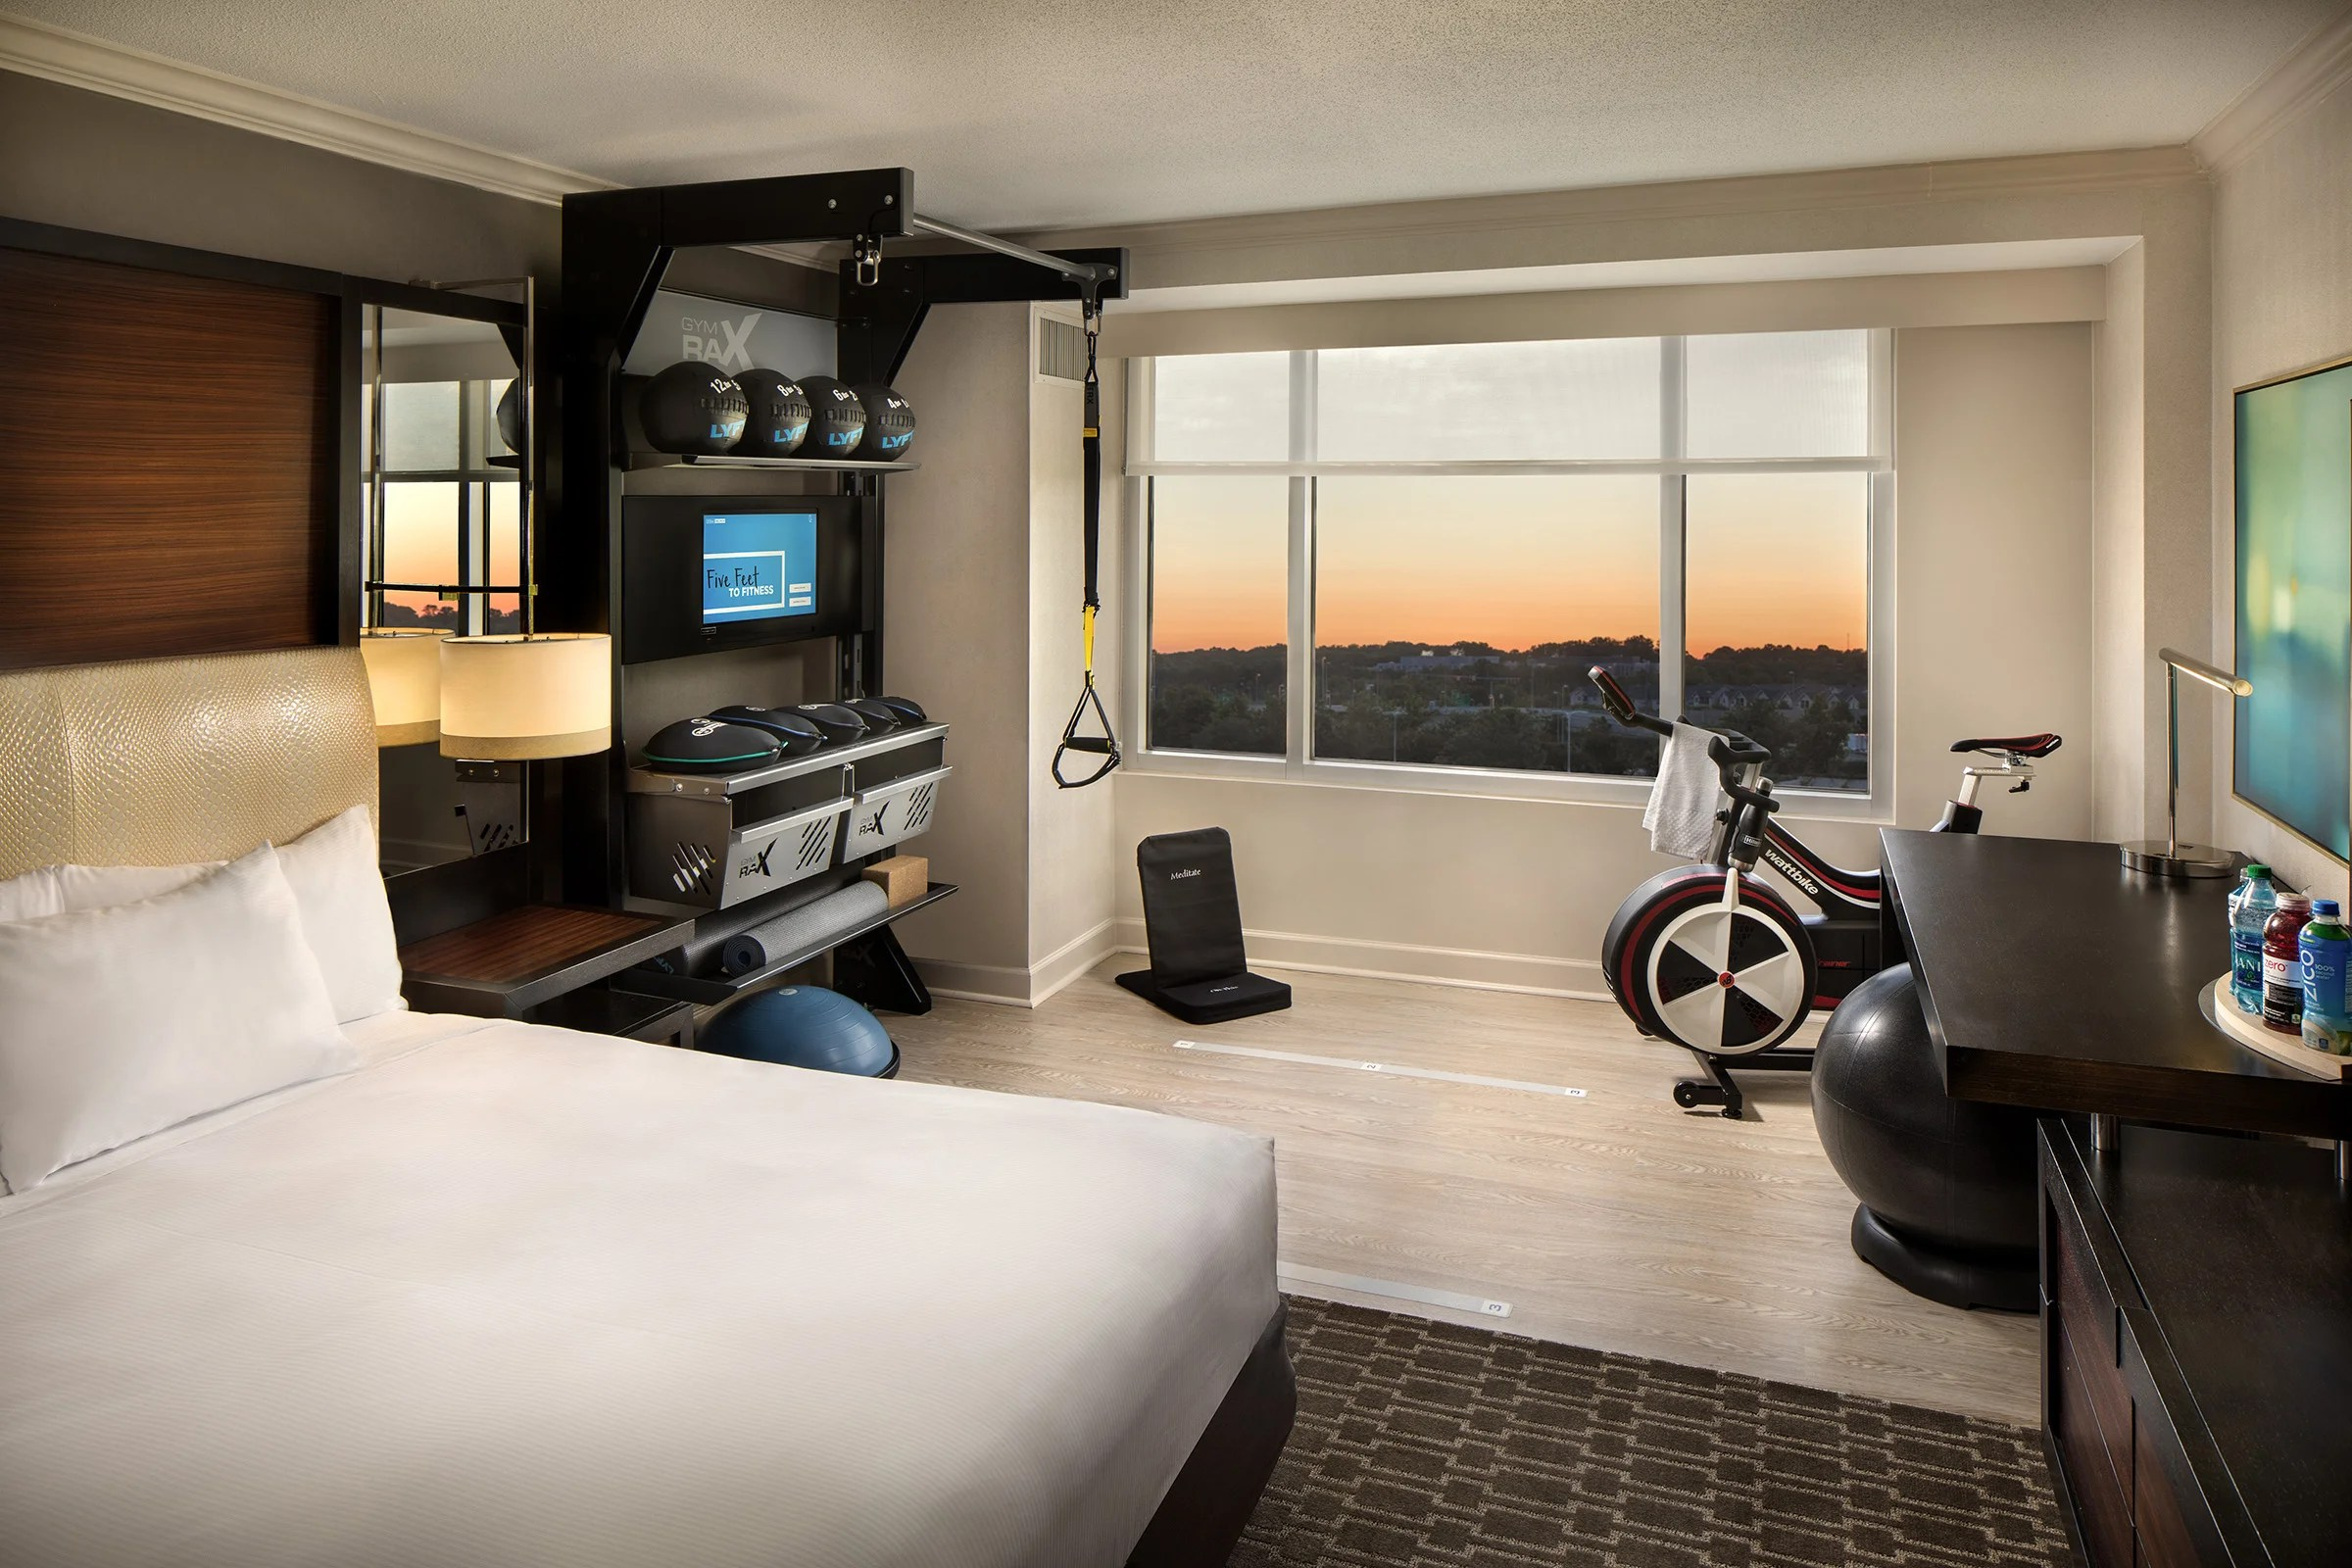 Hilton S New Hotel Rooms Are Centered Around Fitness